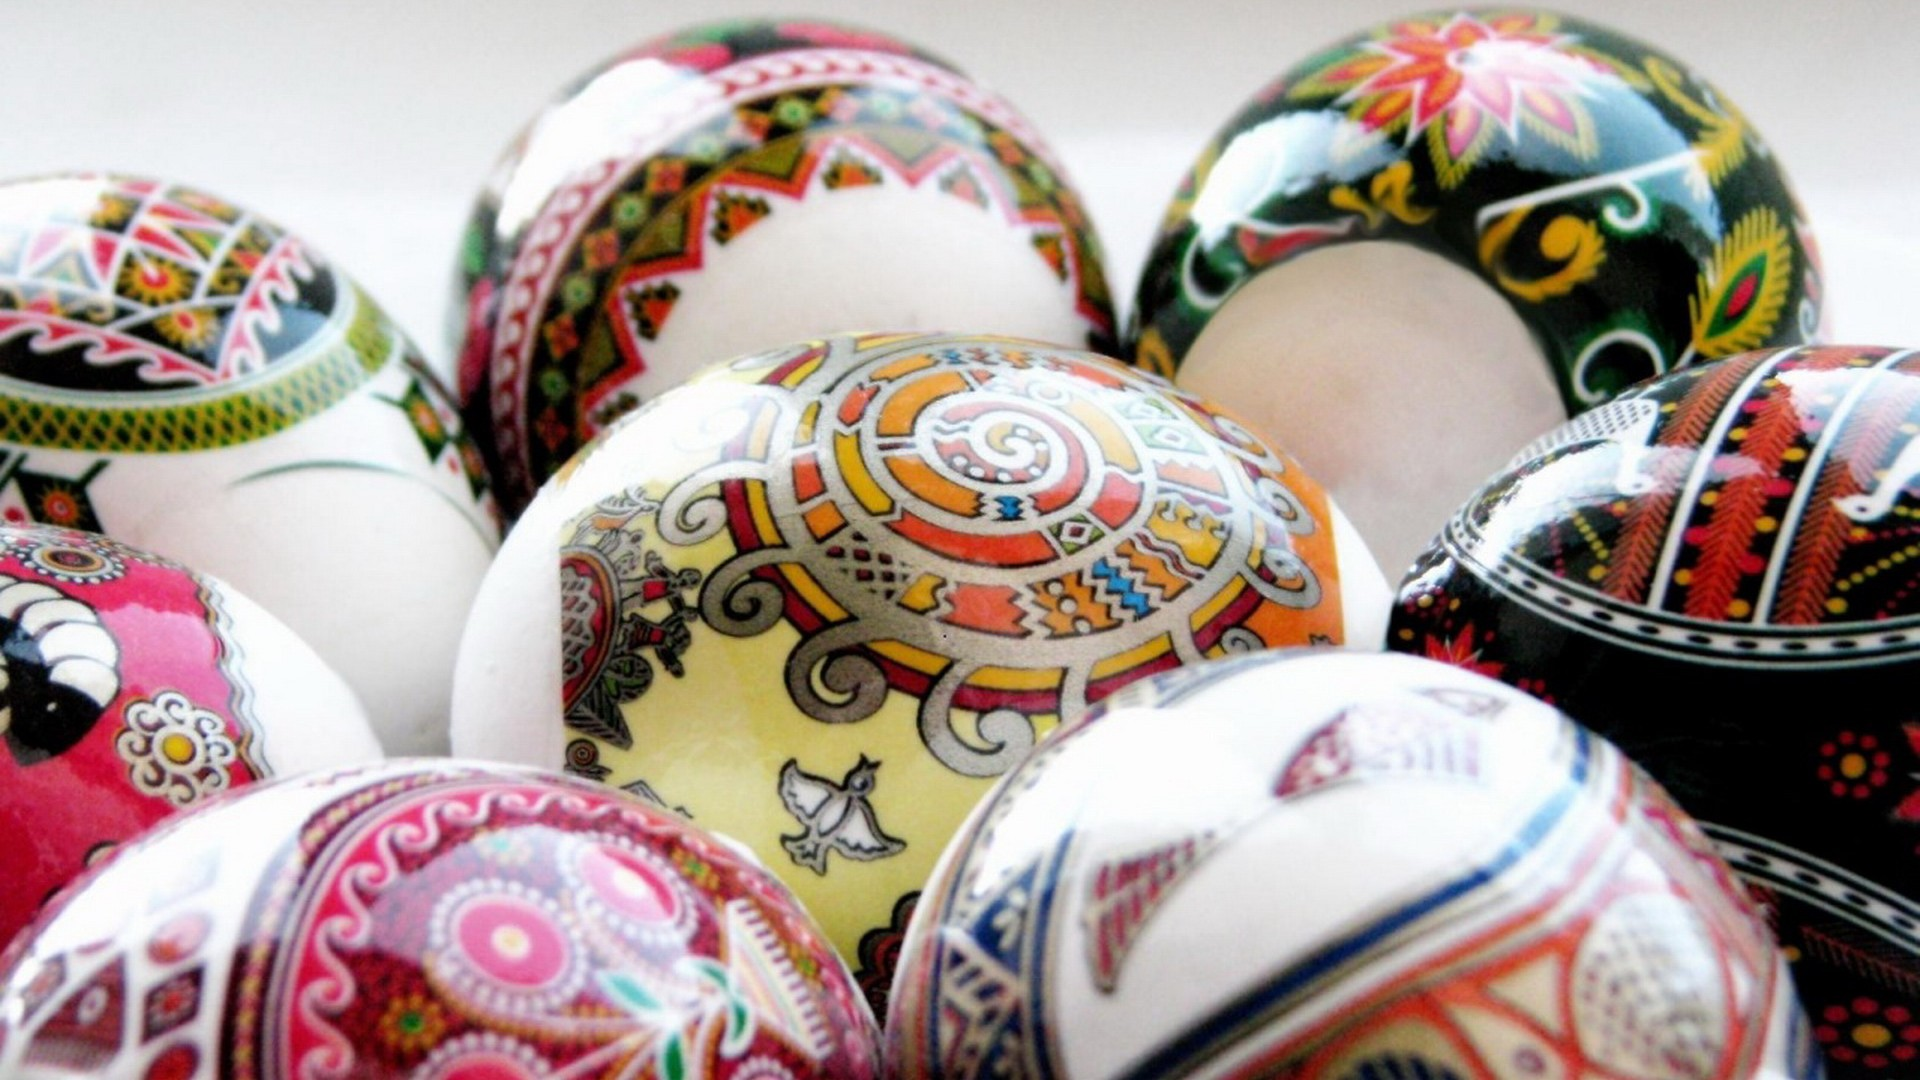 Easter 1080p Wallpaper Wallpaper High Definition High Quality